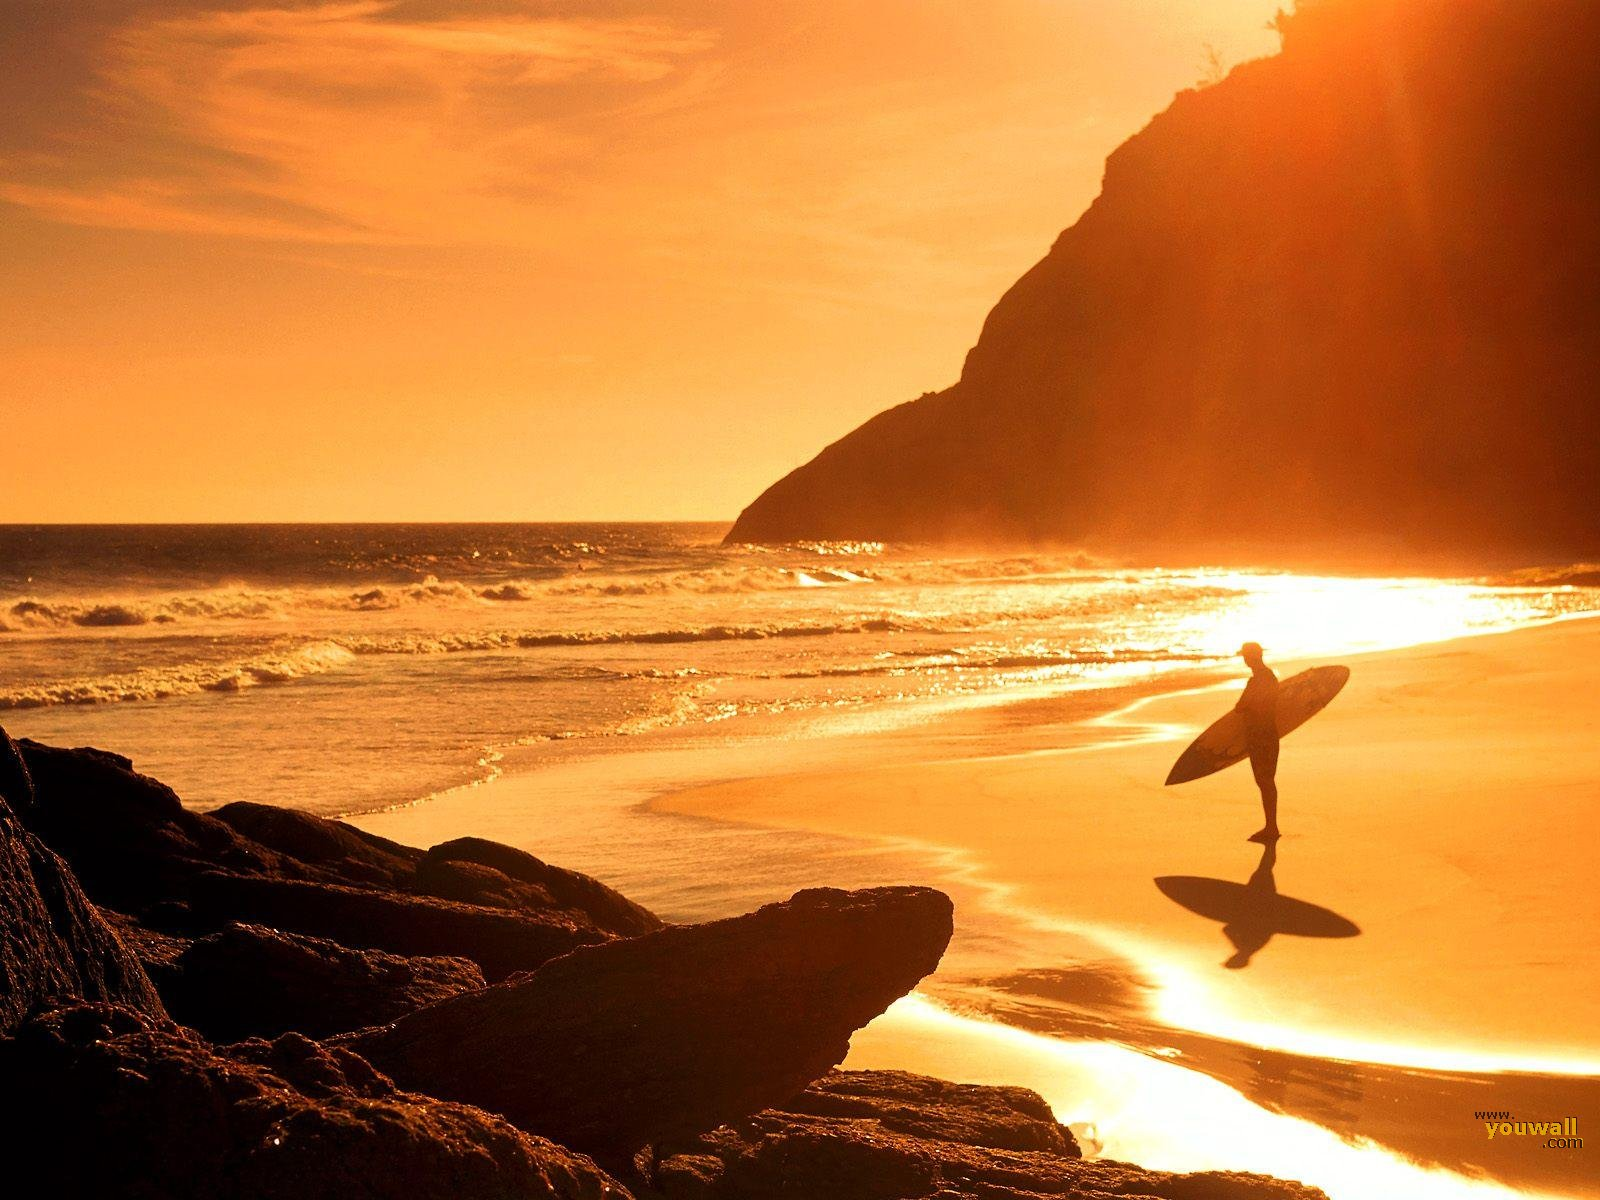 Download Beach Sunset Surf hd Wallpaper in high resolution for 1600x1200